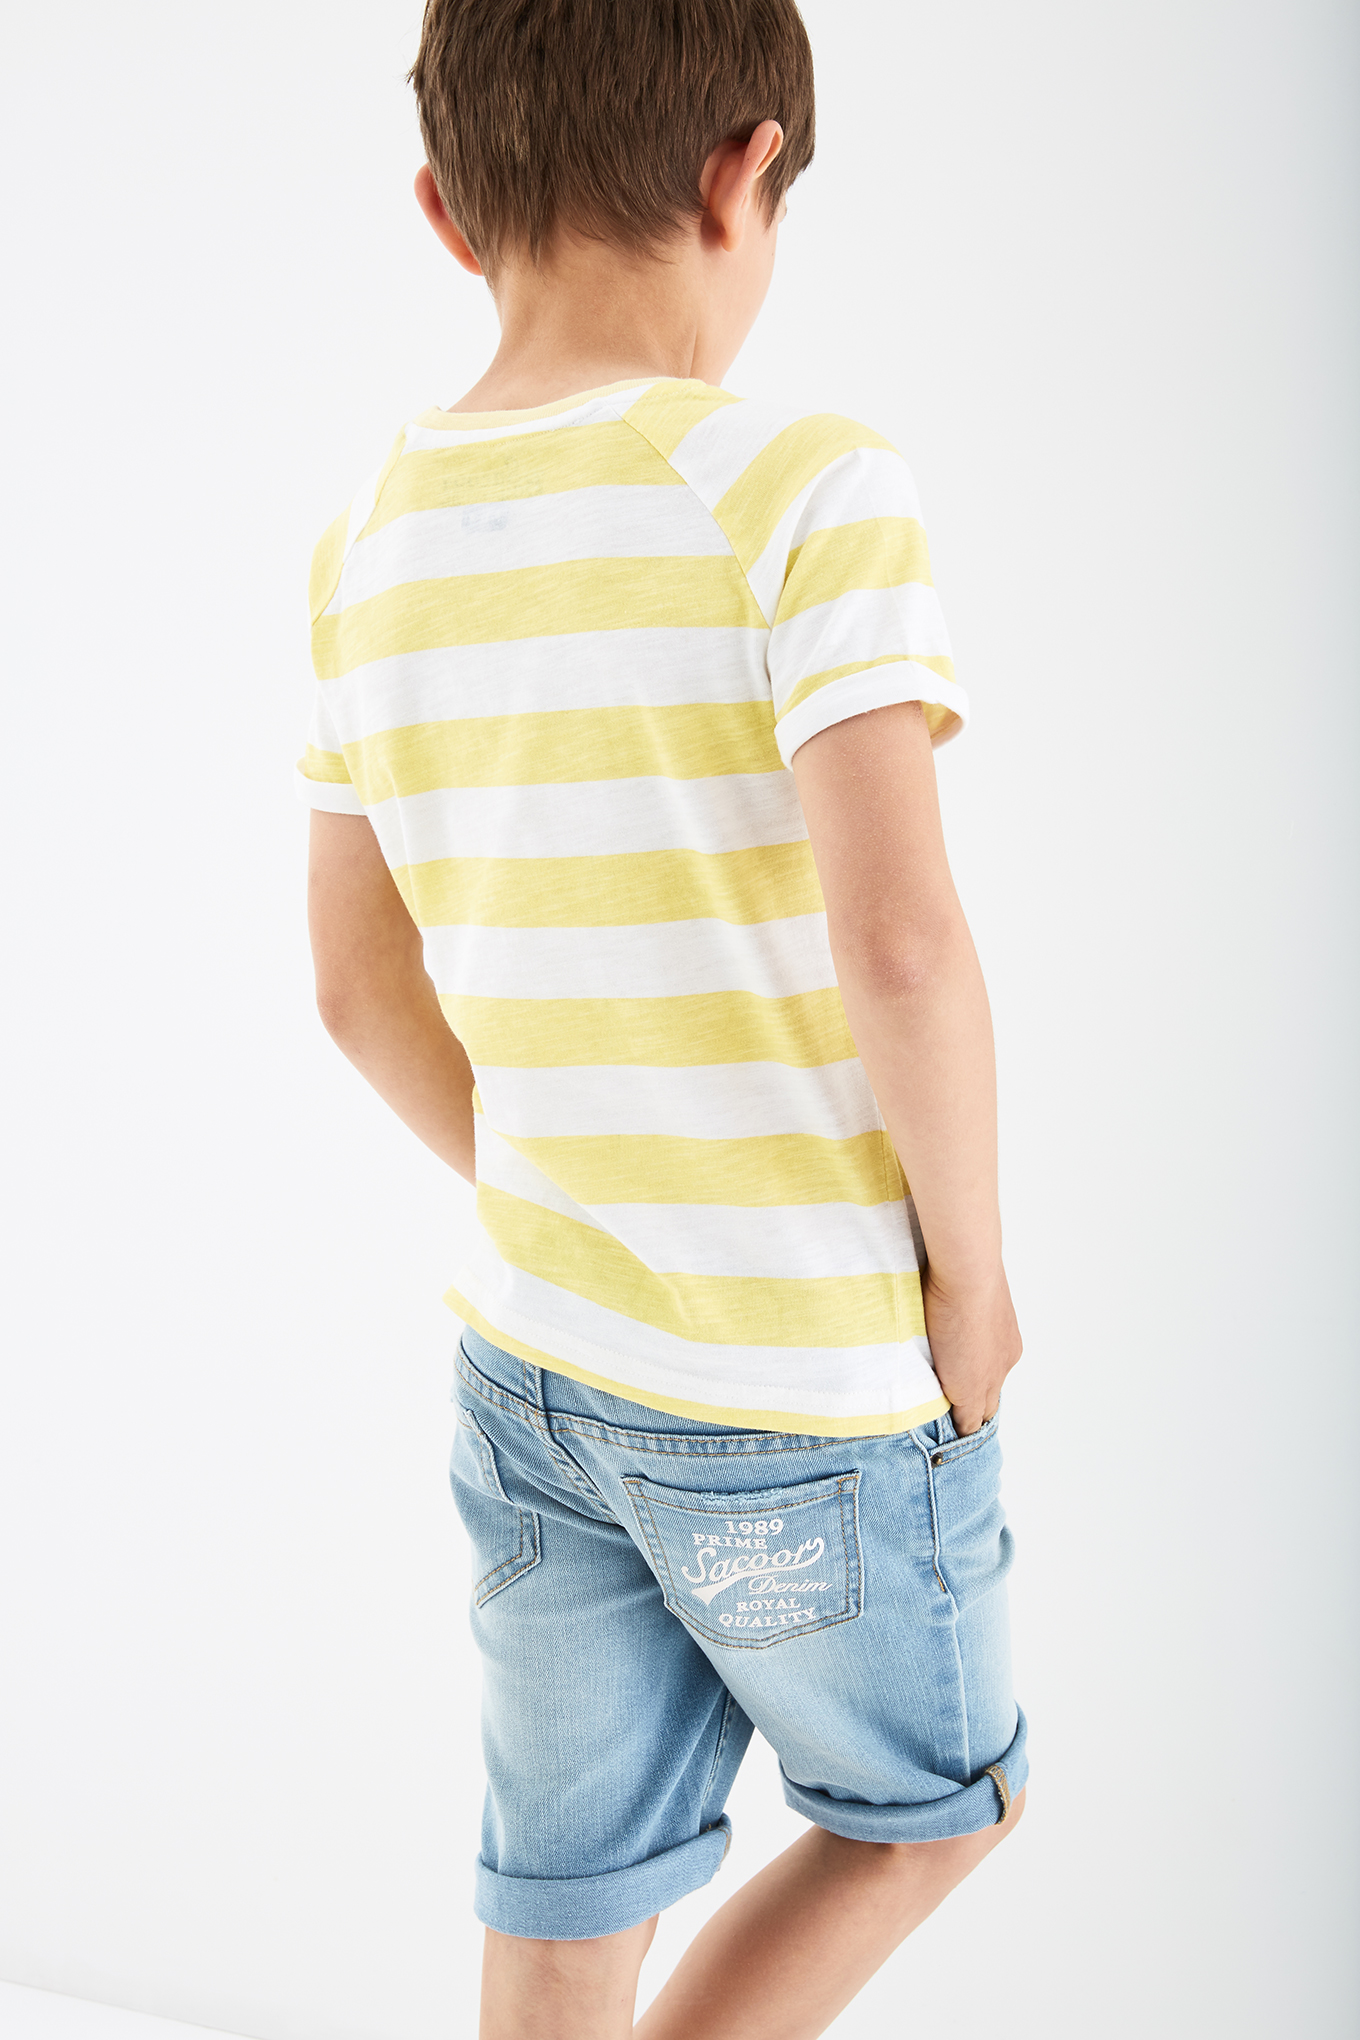 T-Shirt Light Yellow Sport Boy